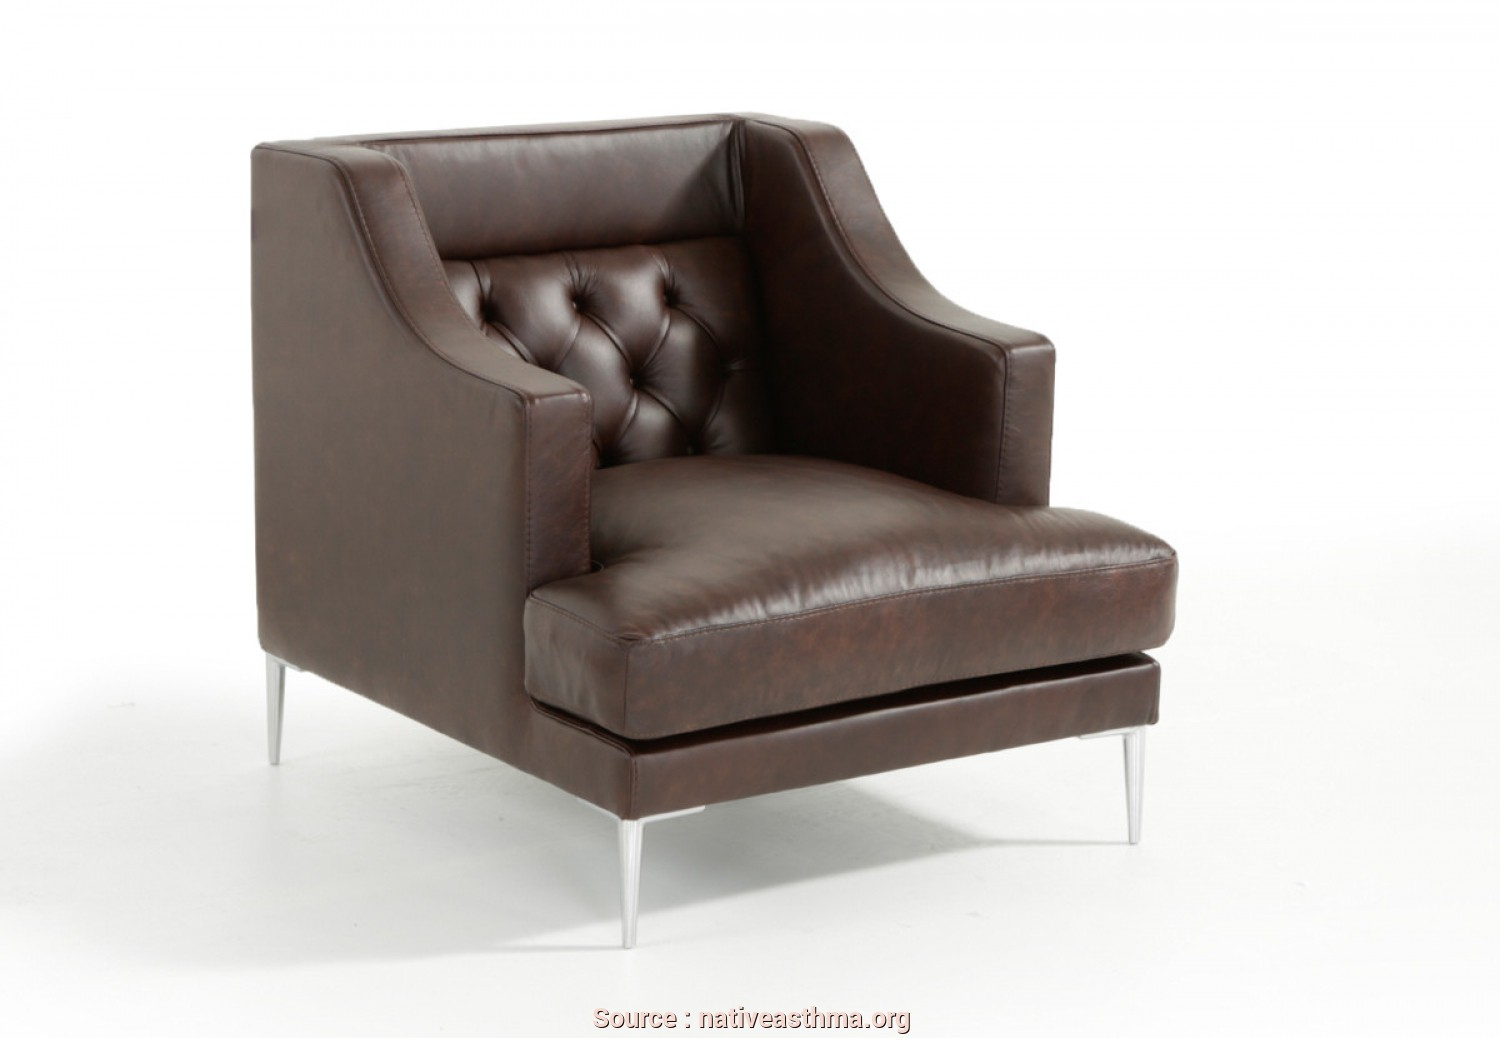 Dondi Divani Roma, Migliore Estro Salotti Ulysses Modern Brown Italian Leather Sofa Set